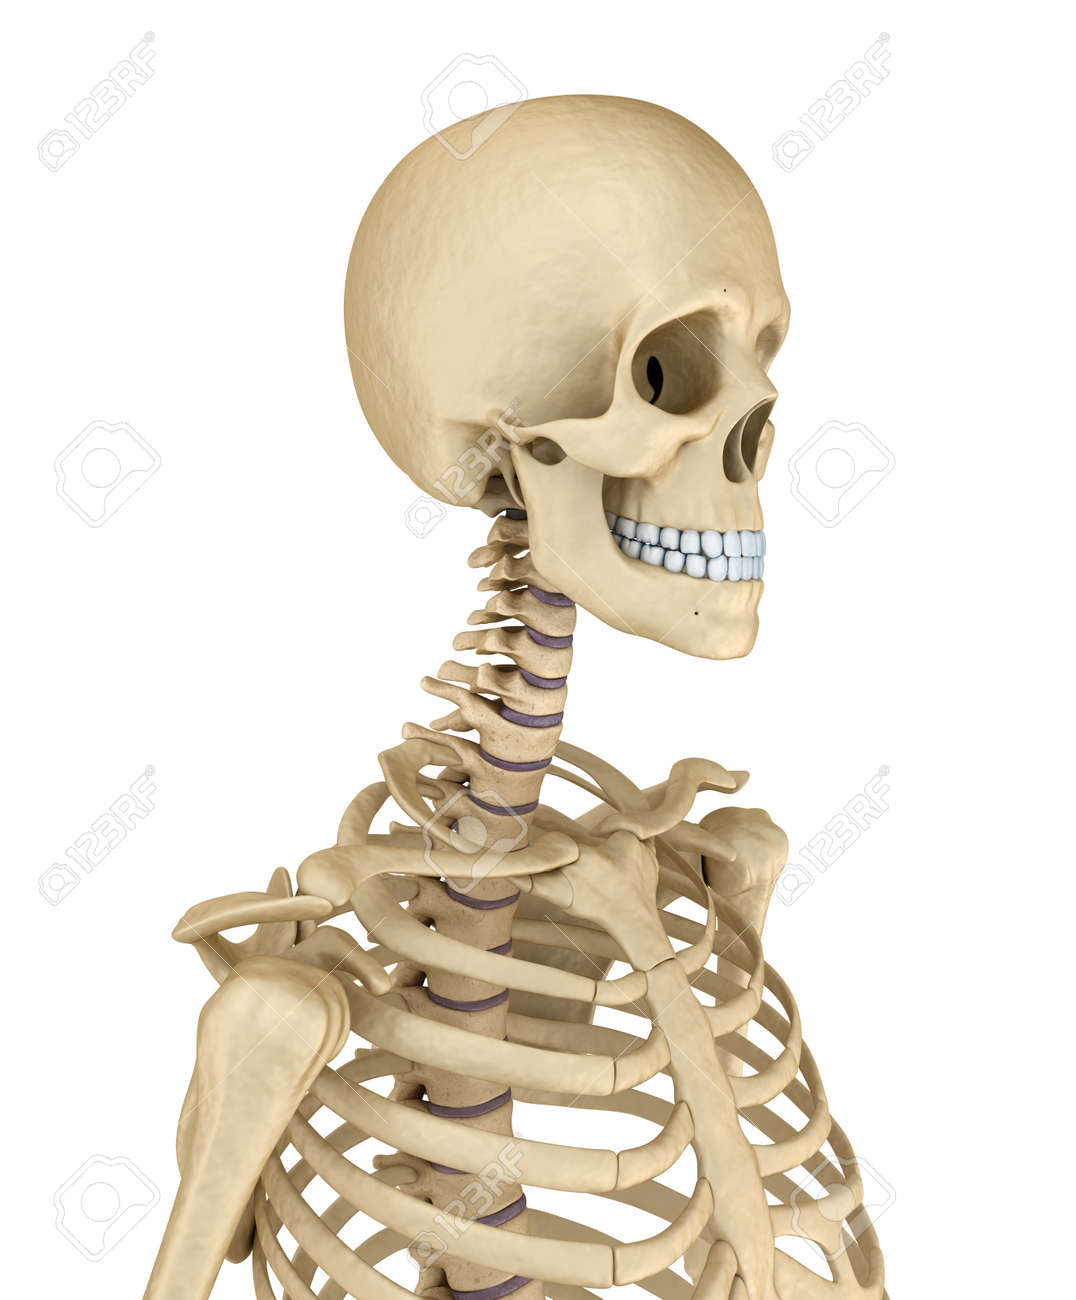 hight resolution of torso of human skeleton isolated medically accurate 3d illustration stock illustration 63479083